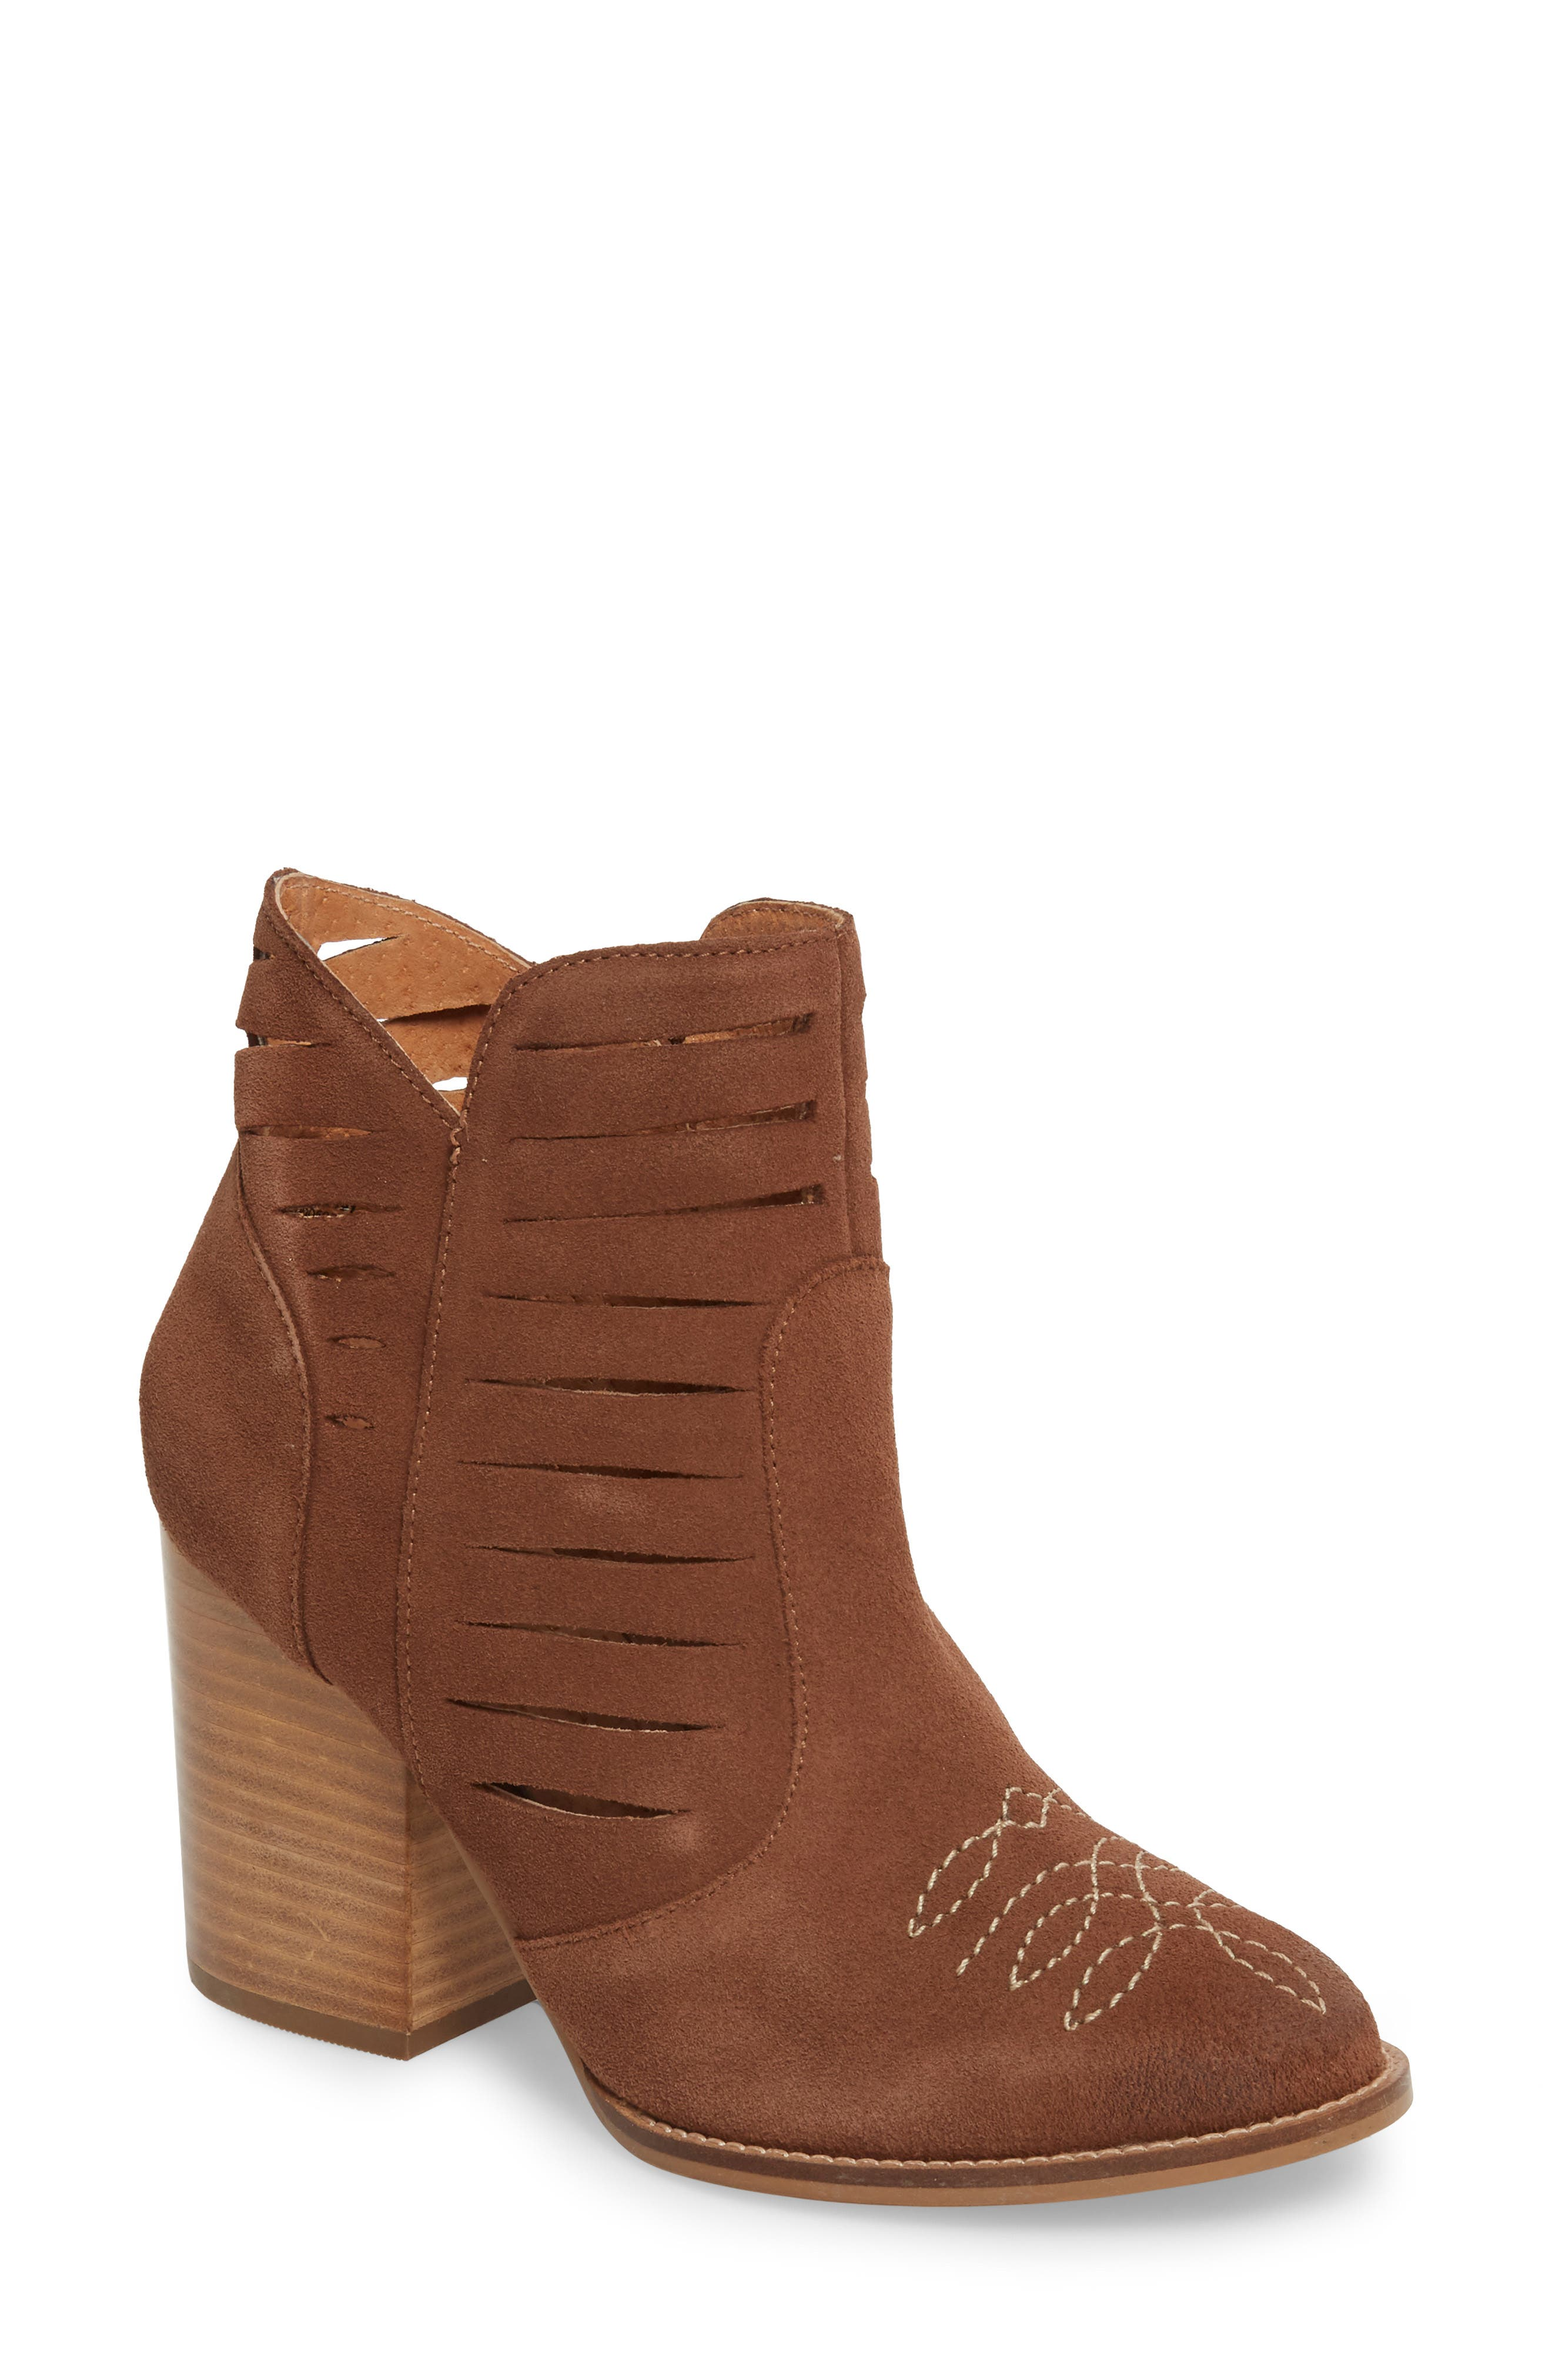 Adriana Western Bootie,                             Main thumbnail 1, color,                             Whiskey Suede